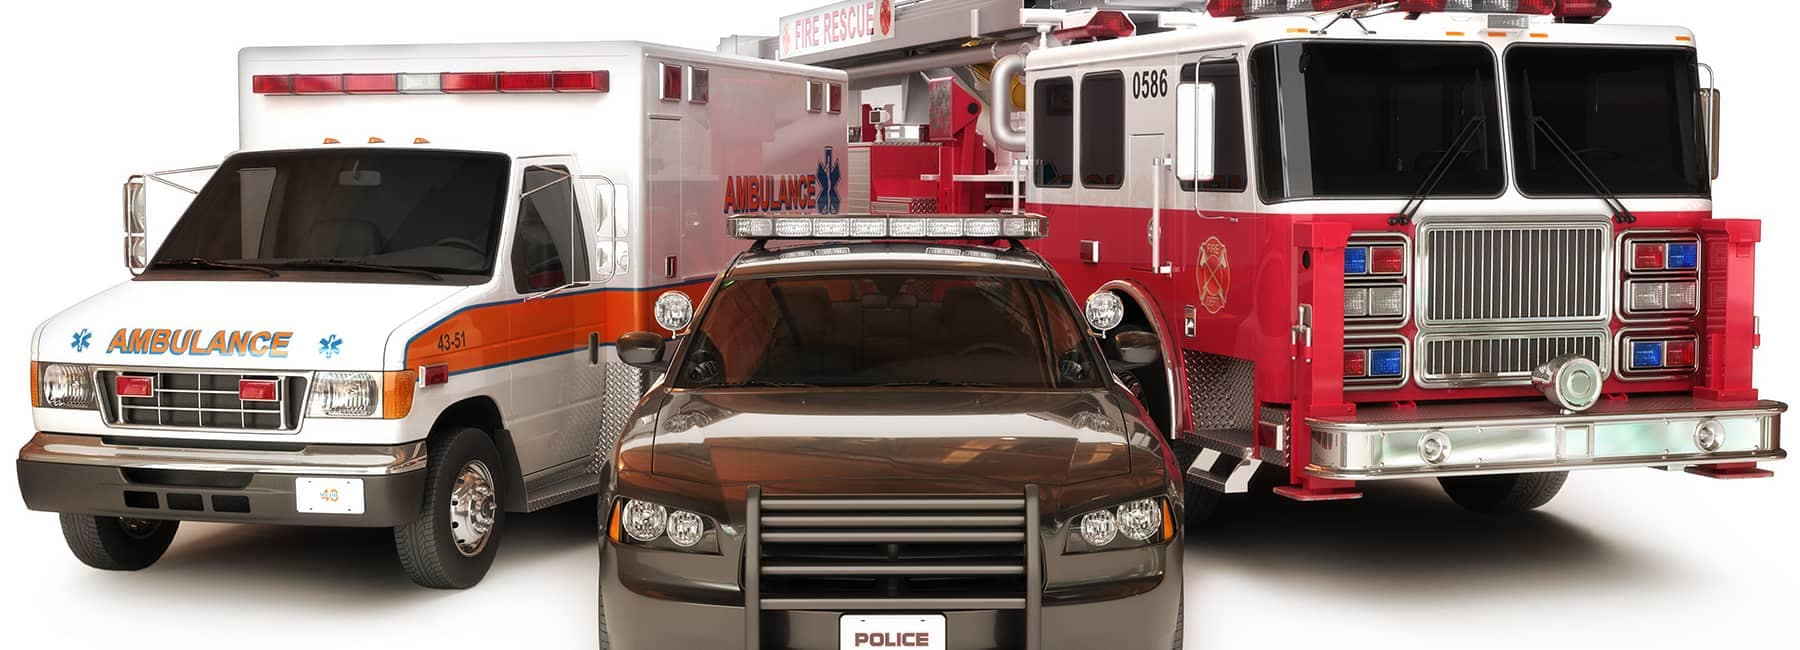 ambulance, police car, and fire truck